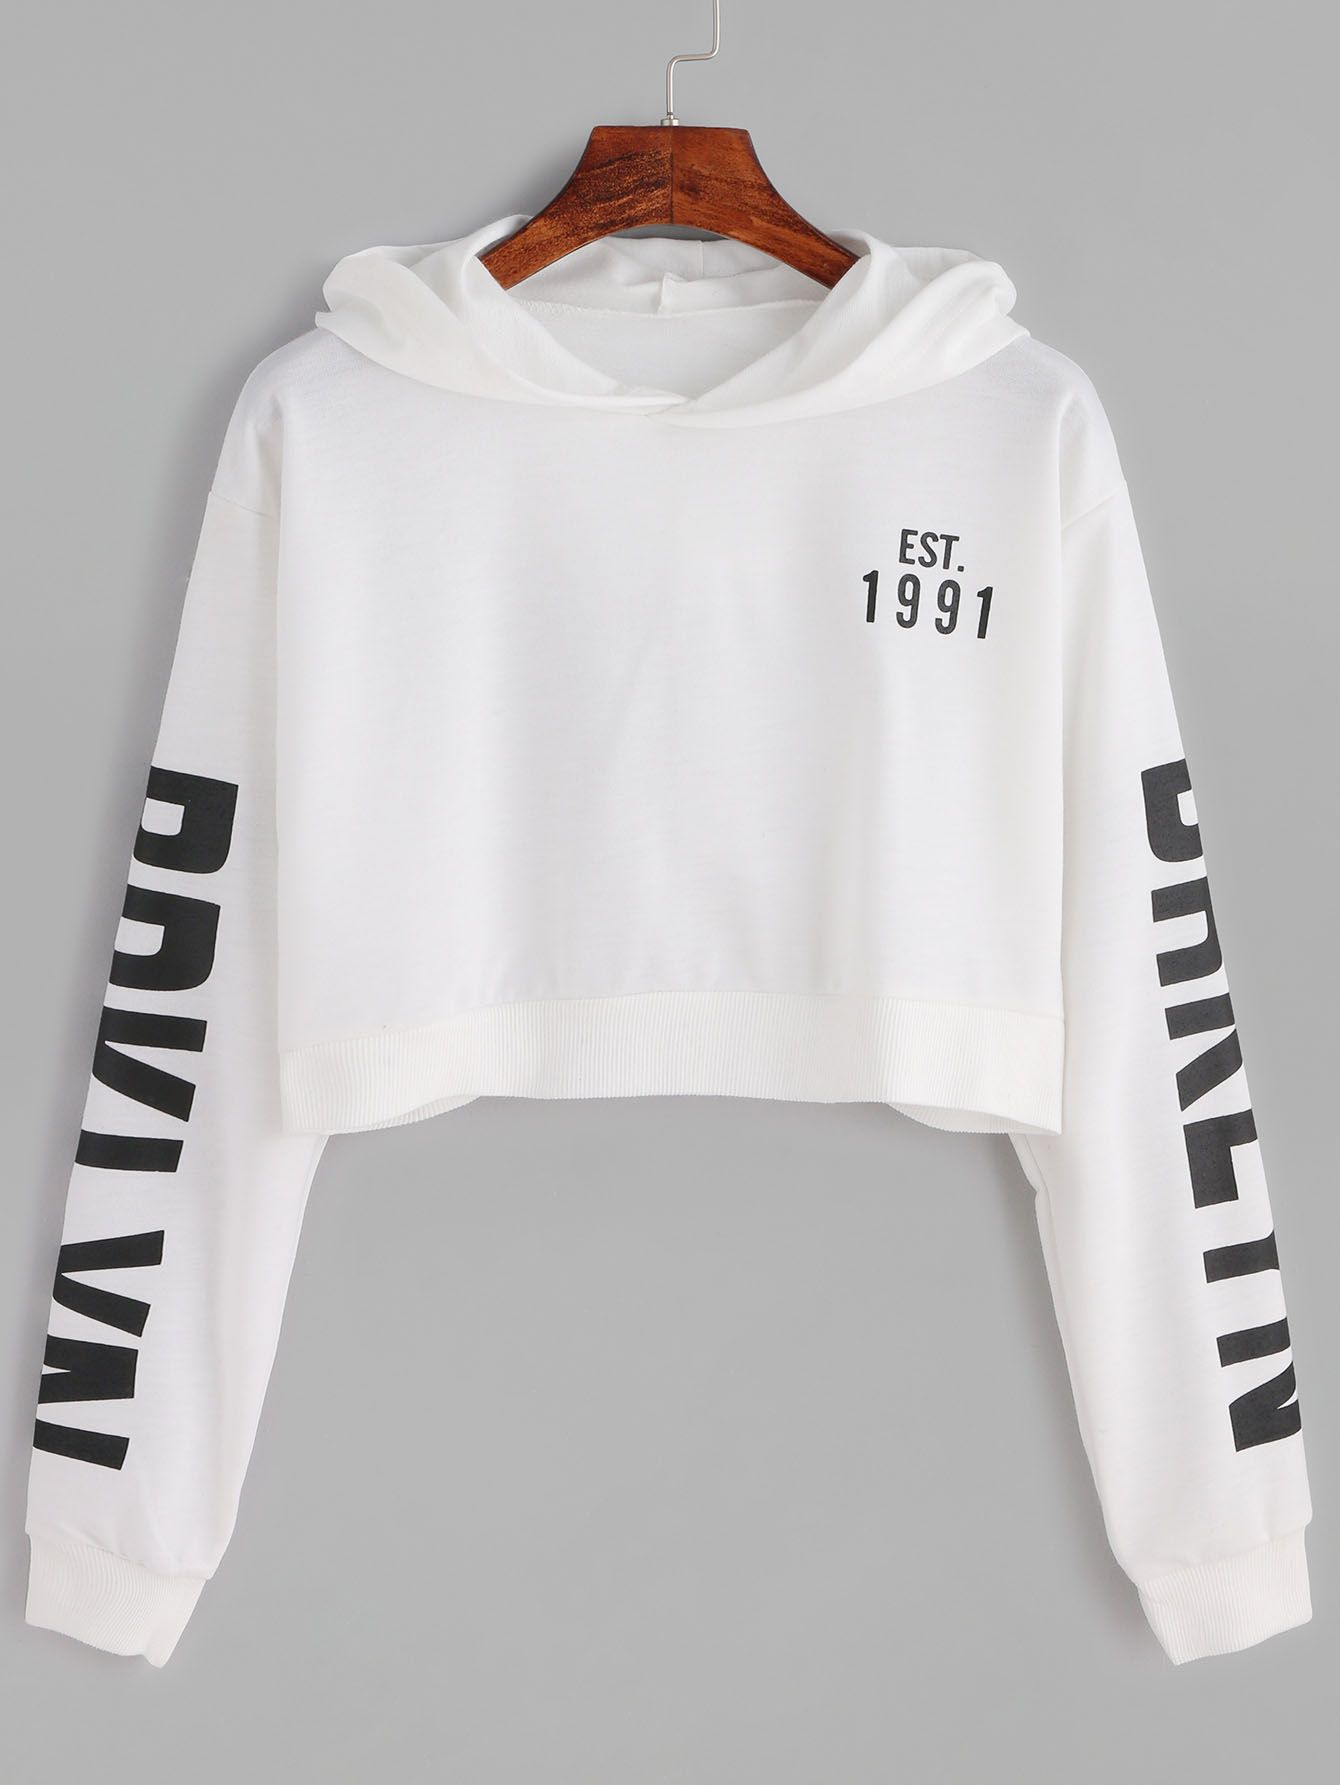 b917442df4 Shop White Letter Print Crop Hooded Sweatshirt online. SheIn offers White  Letter Print Crop Hooded Sweatshirt & more to fit your fashionable needs.